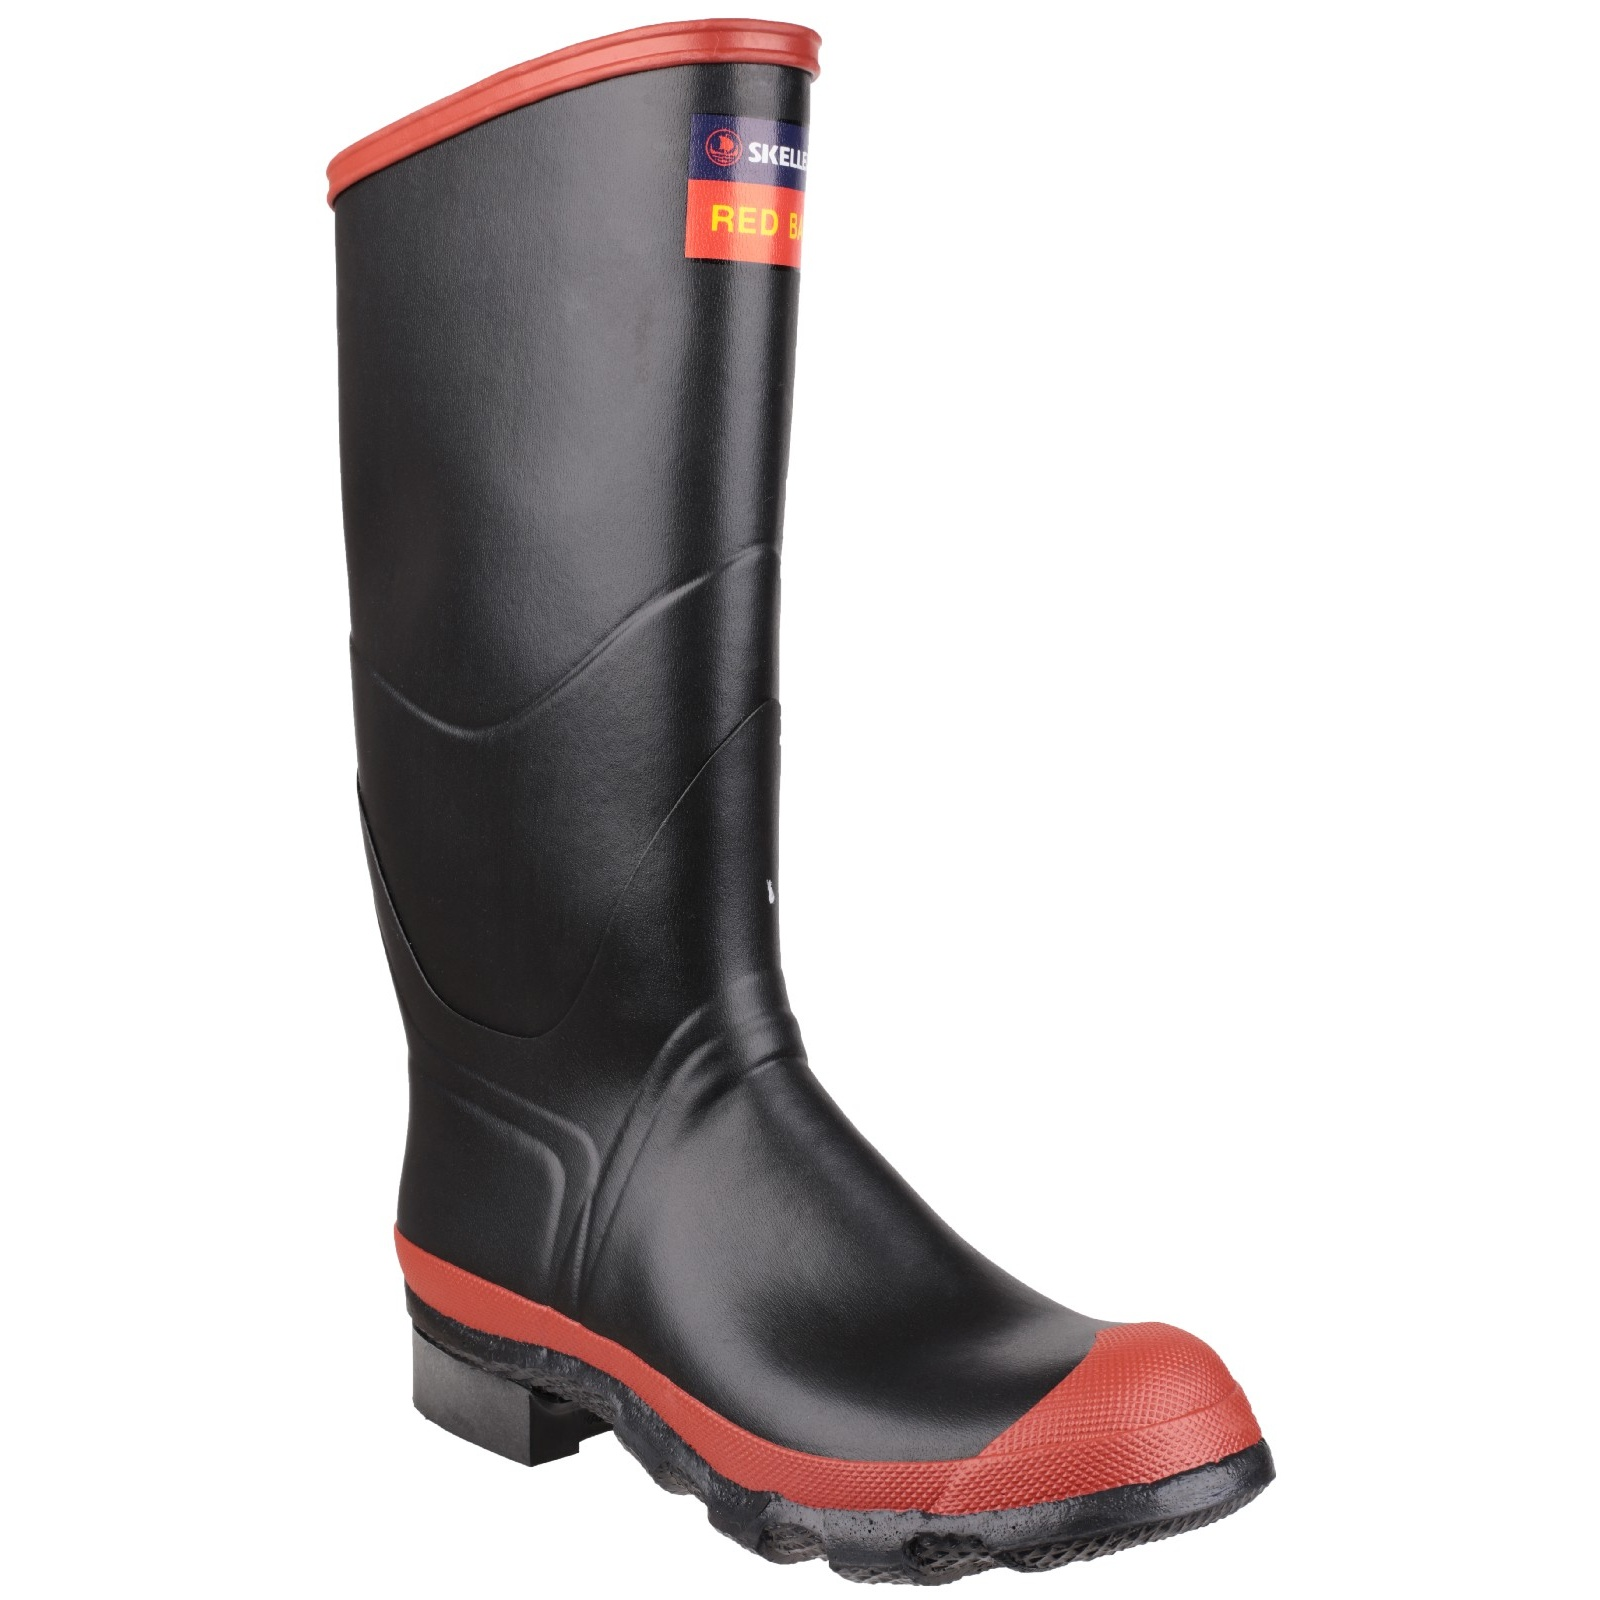 Find great deals on eBay for mens knee high boots. Shop with confidence. Skip to main content. eBay: Demonia 20 eye Vegan Black Combat Military Knee High Boots Rocker Punk Mens See more like this. CARRIBEAN MEN PIRATE RIDING COSTUME GOTH KNEE HIGH 3-BUCKLES FOLDED BOOT. Brand New. $ Estimated delivery Fri, Sep